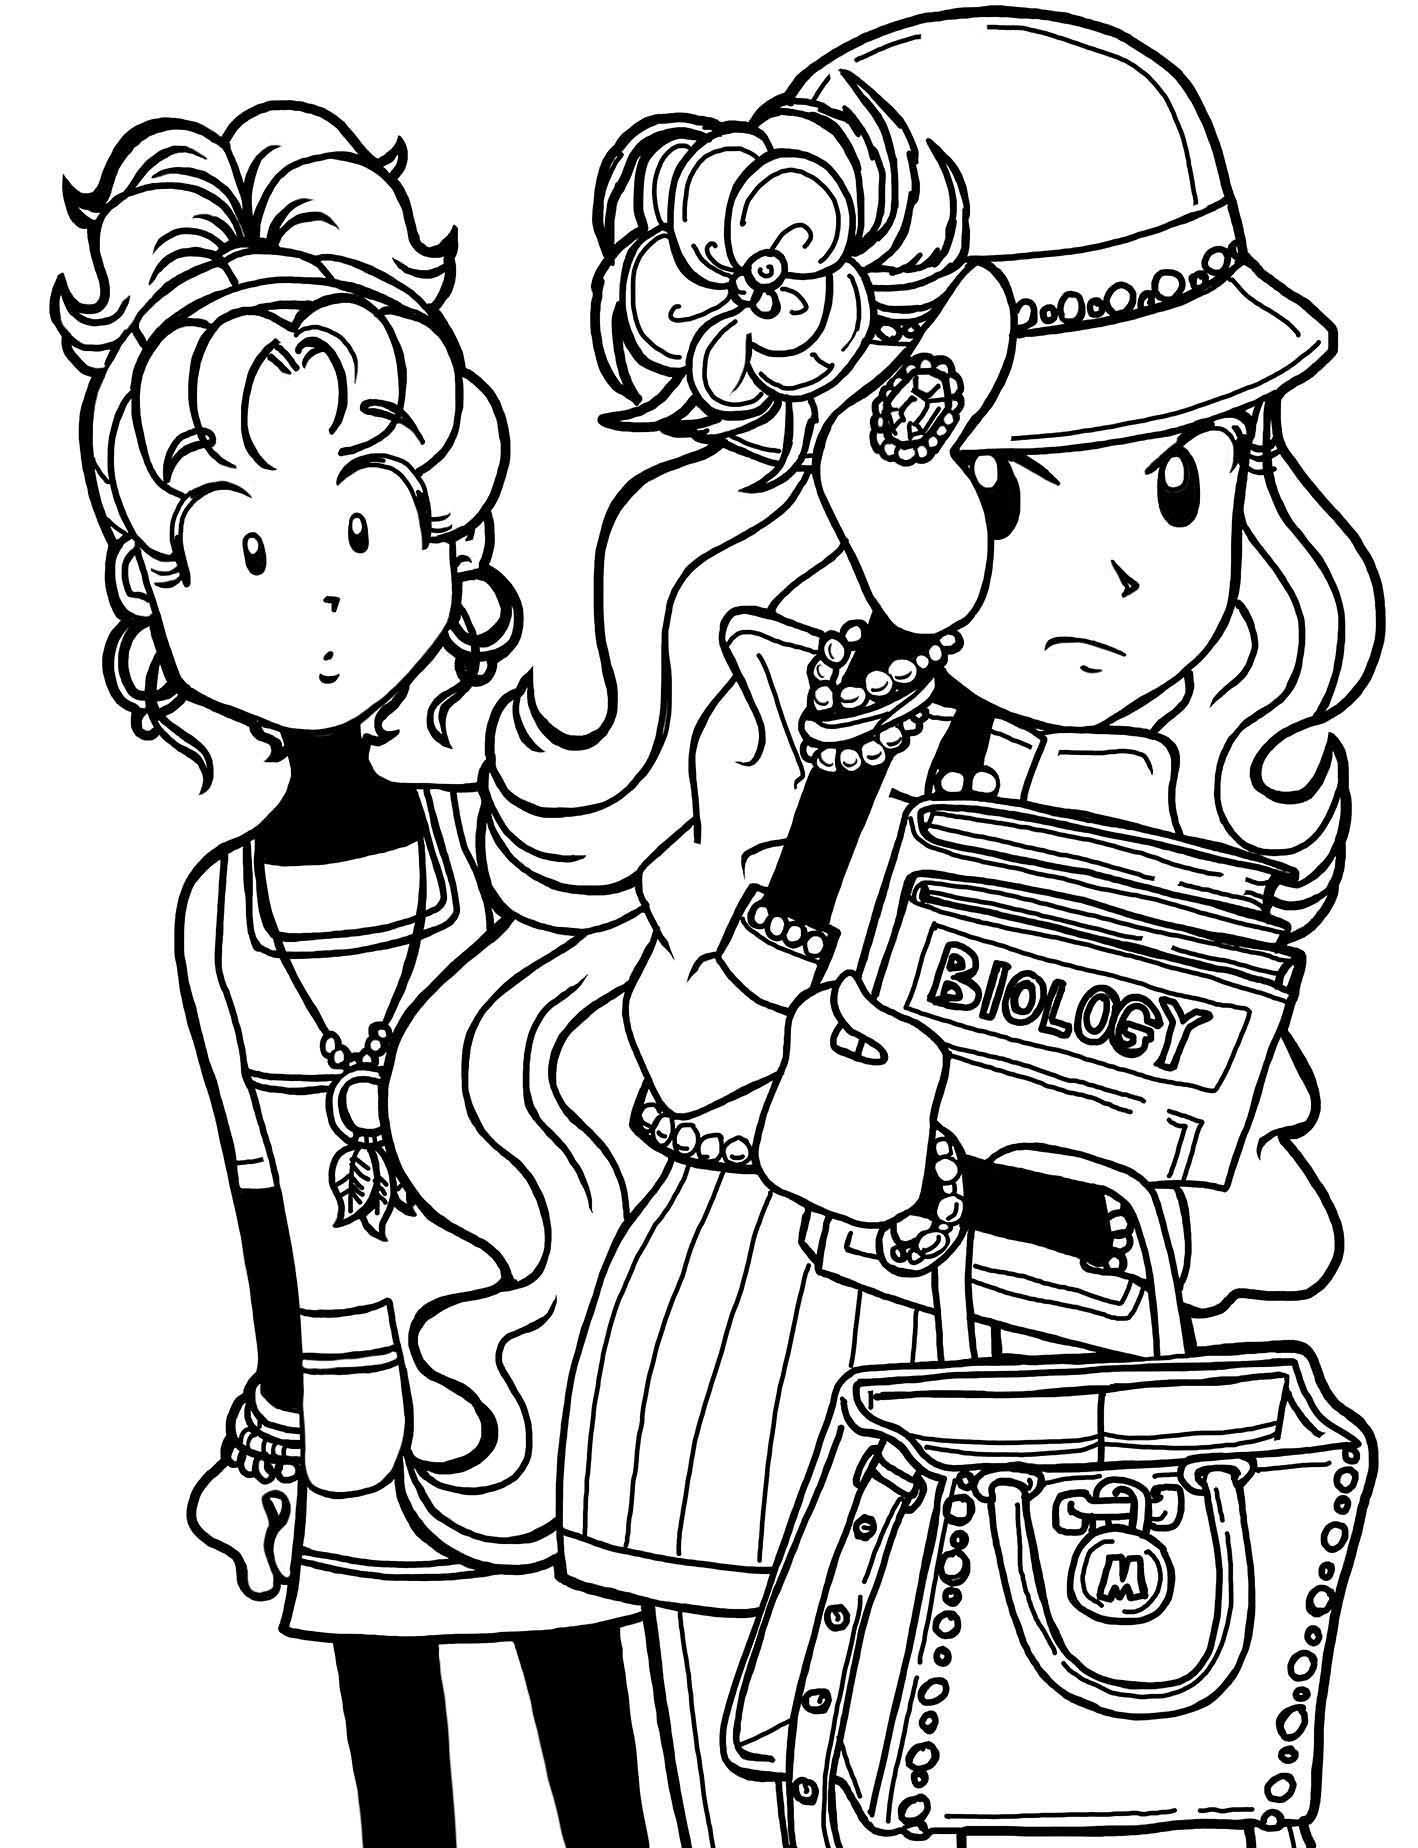 Coloring pages for dork diaries - Dork Diaries Printable Coloring Pages Coloring Home